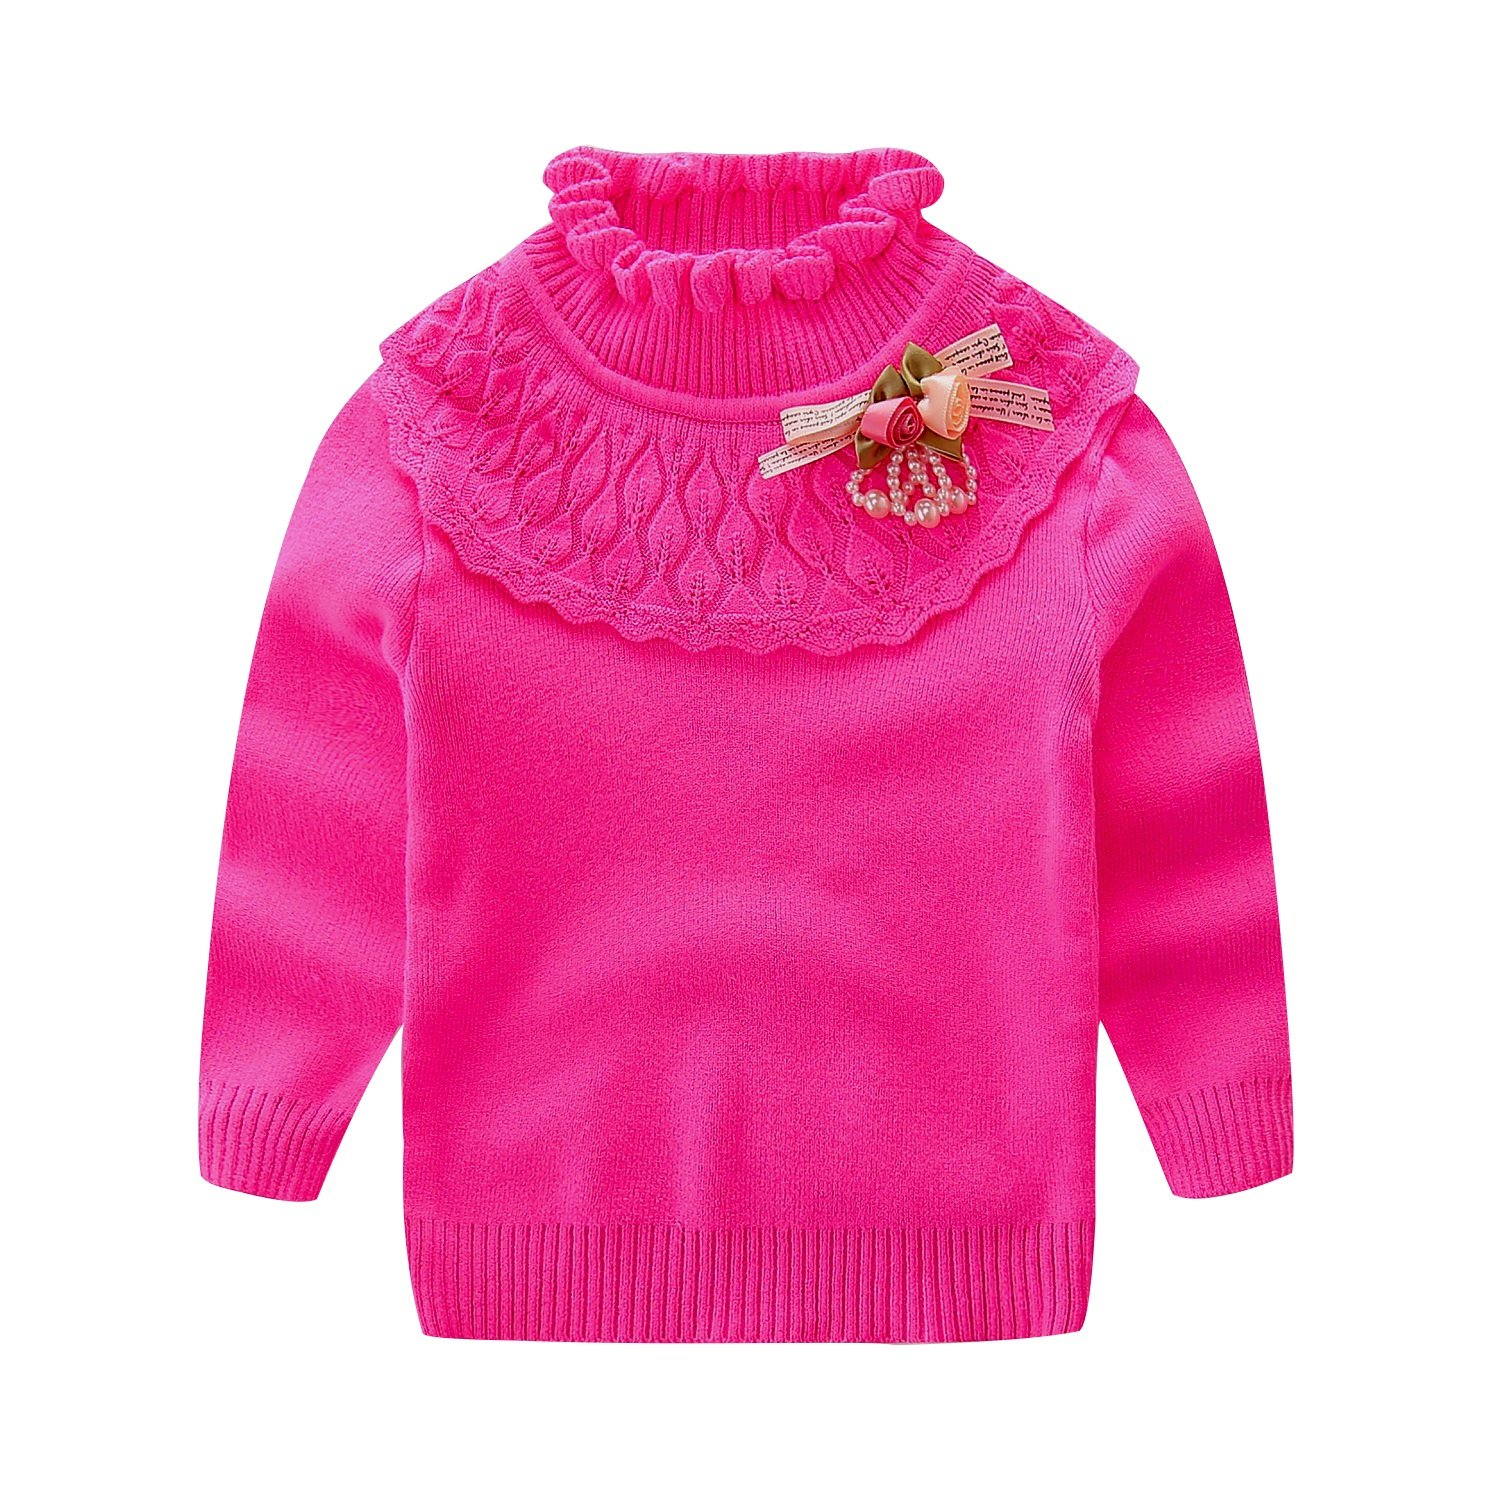 UWESPRING Little Girls Turtleneck Lace Sweater Flower Knit Pullover Made in China